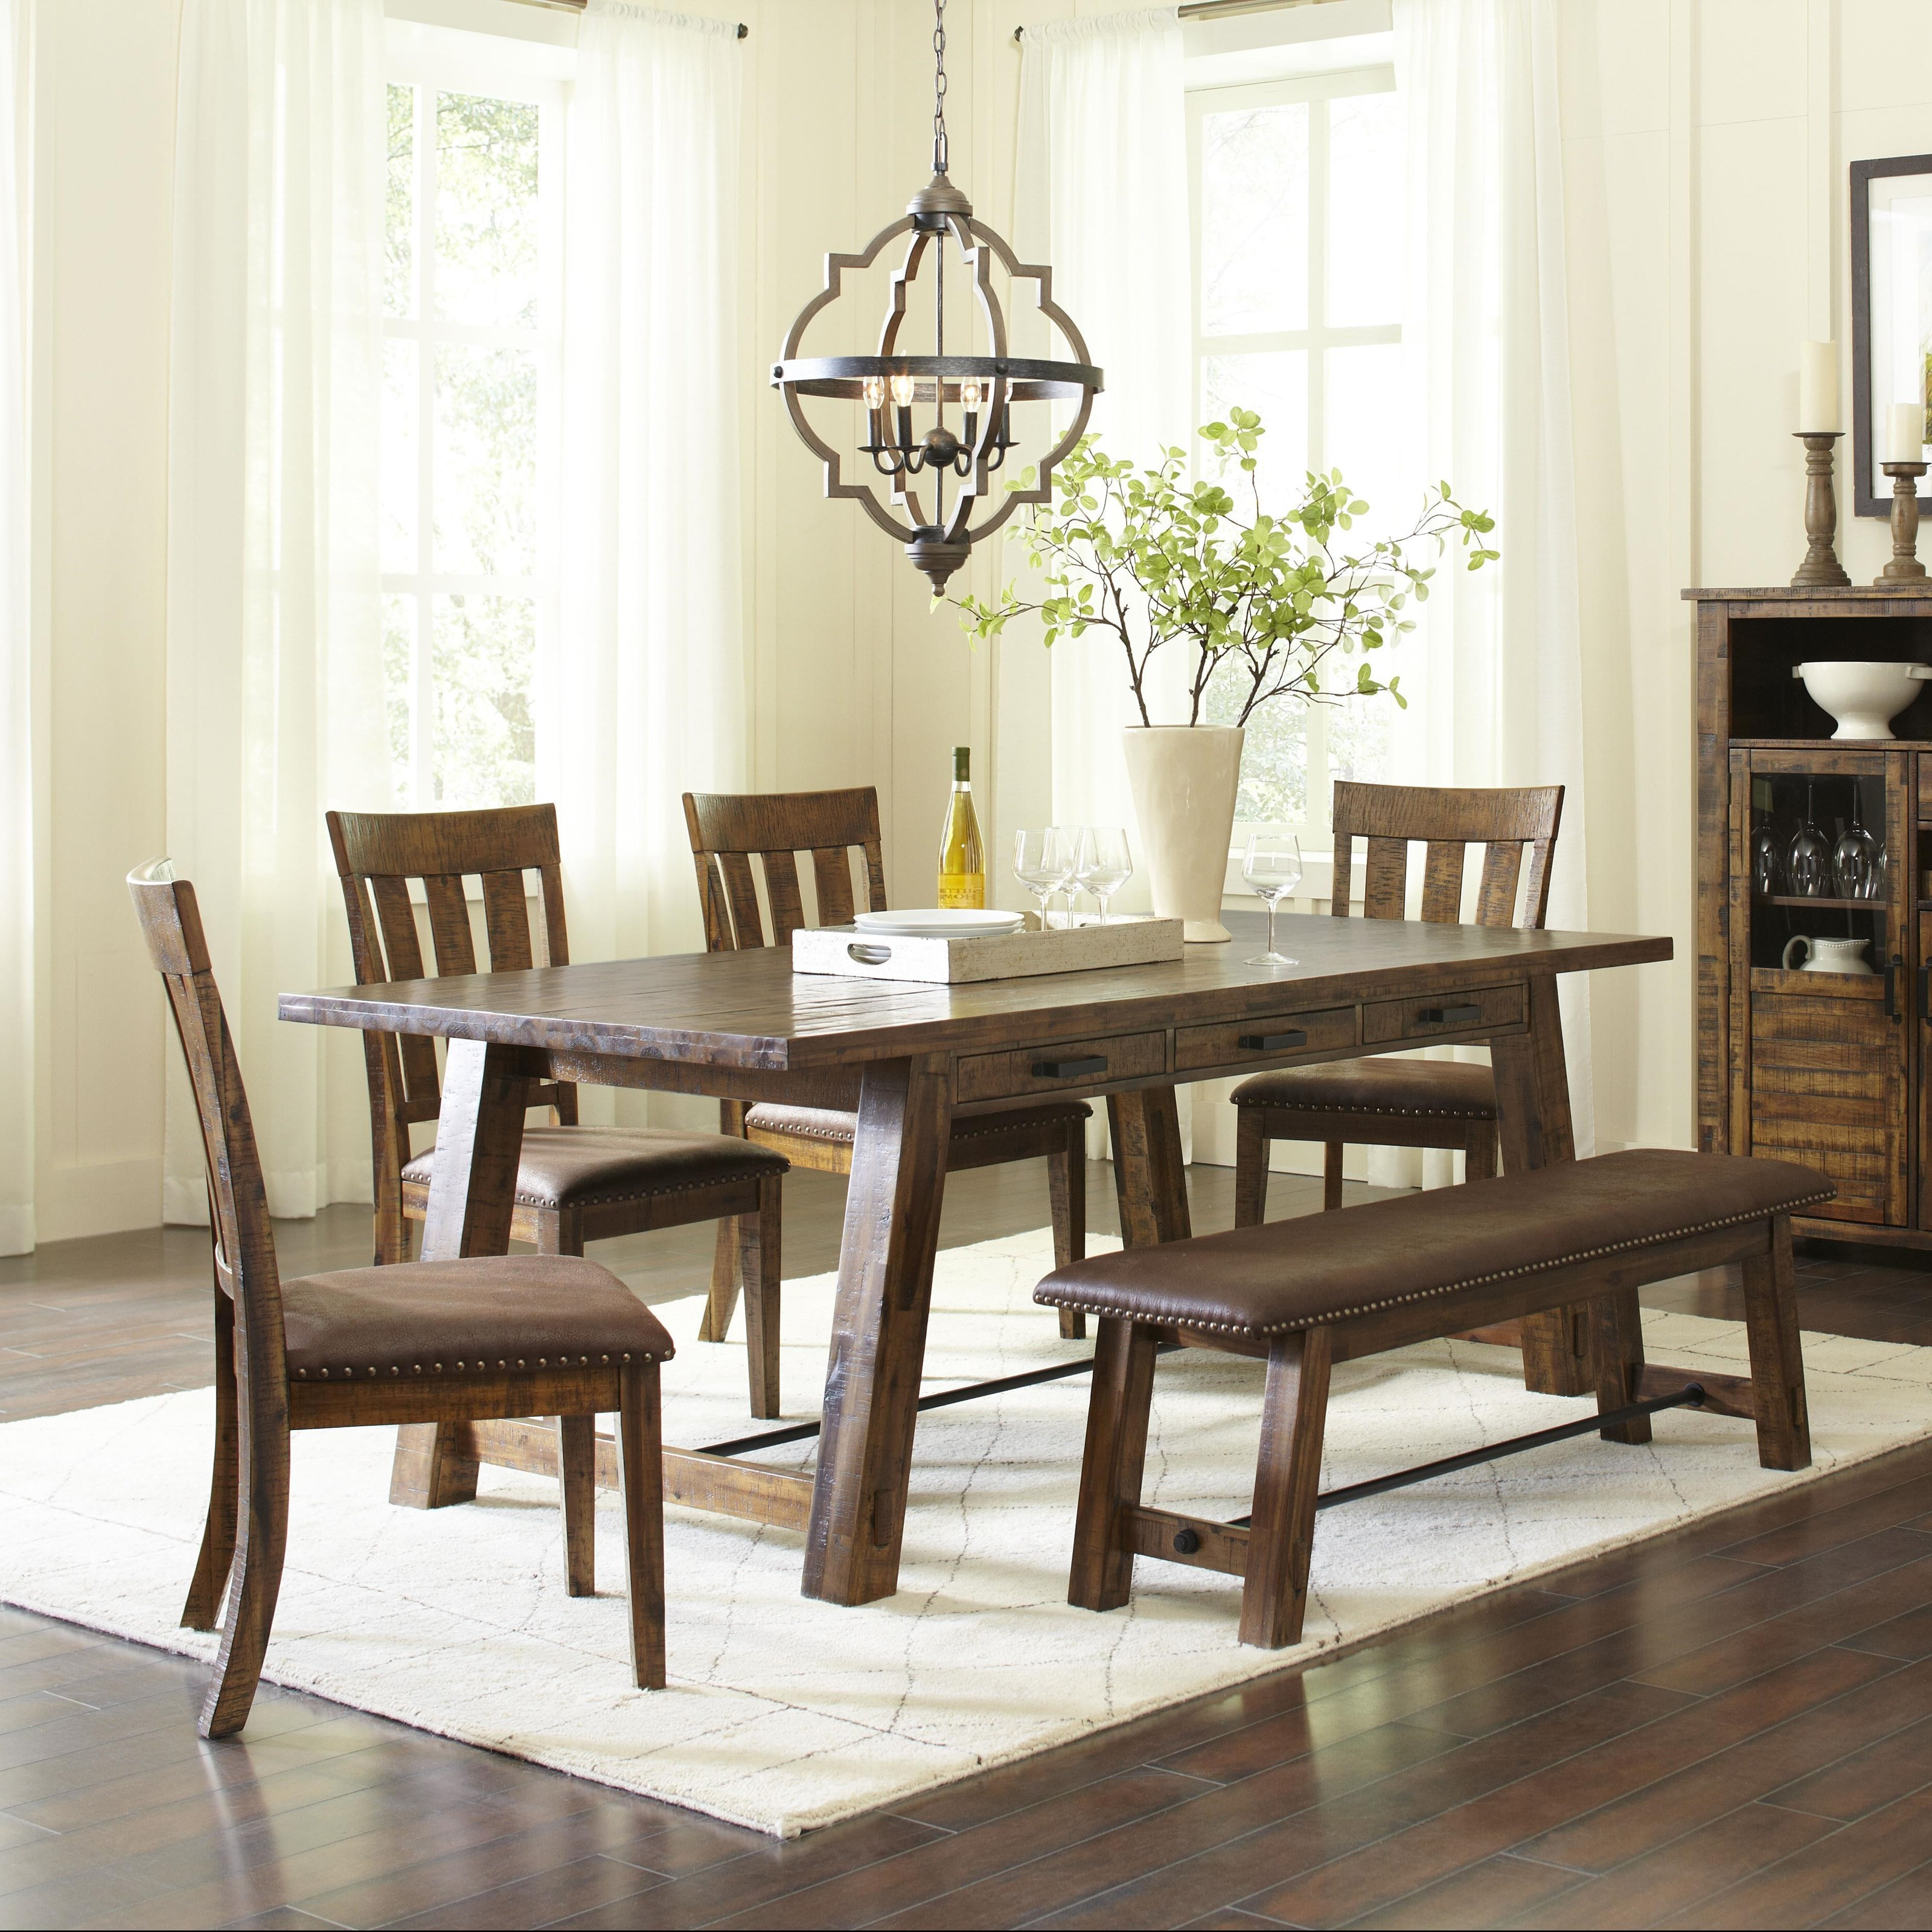 Jofran Cannon Valley Trestle Dining Table and Chair/Bench Set & Jofran Cannon Valley Trestle Dining Table and Chair/Bench Set - Jofran